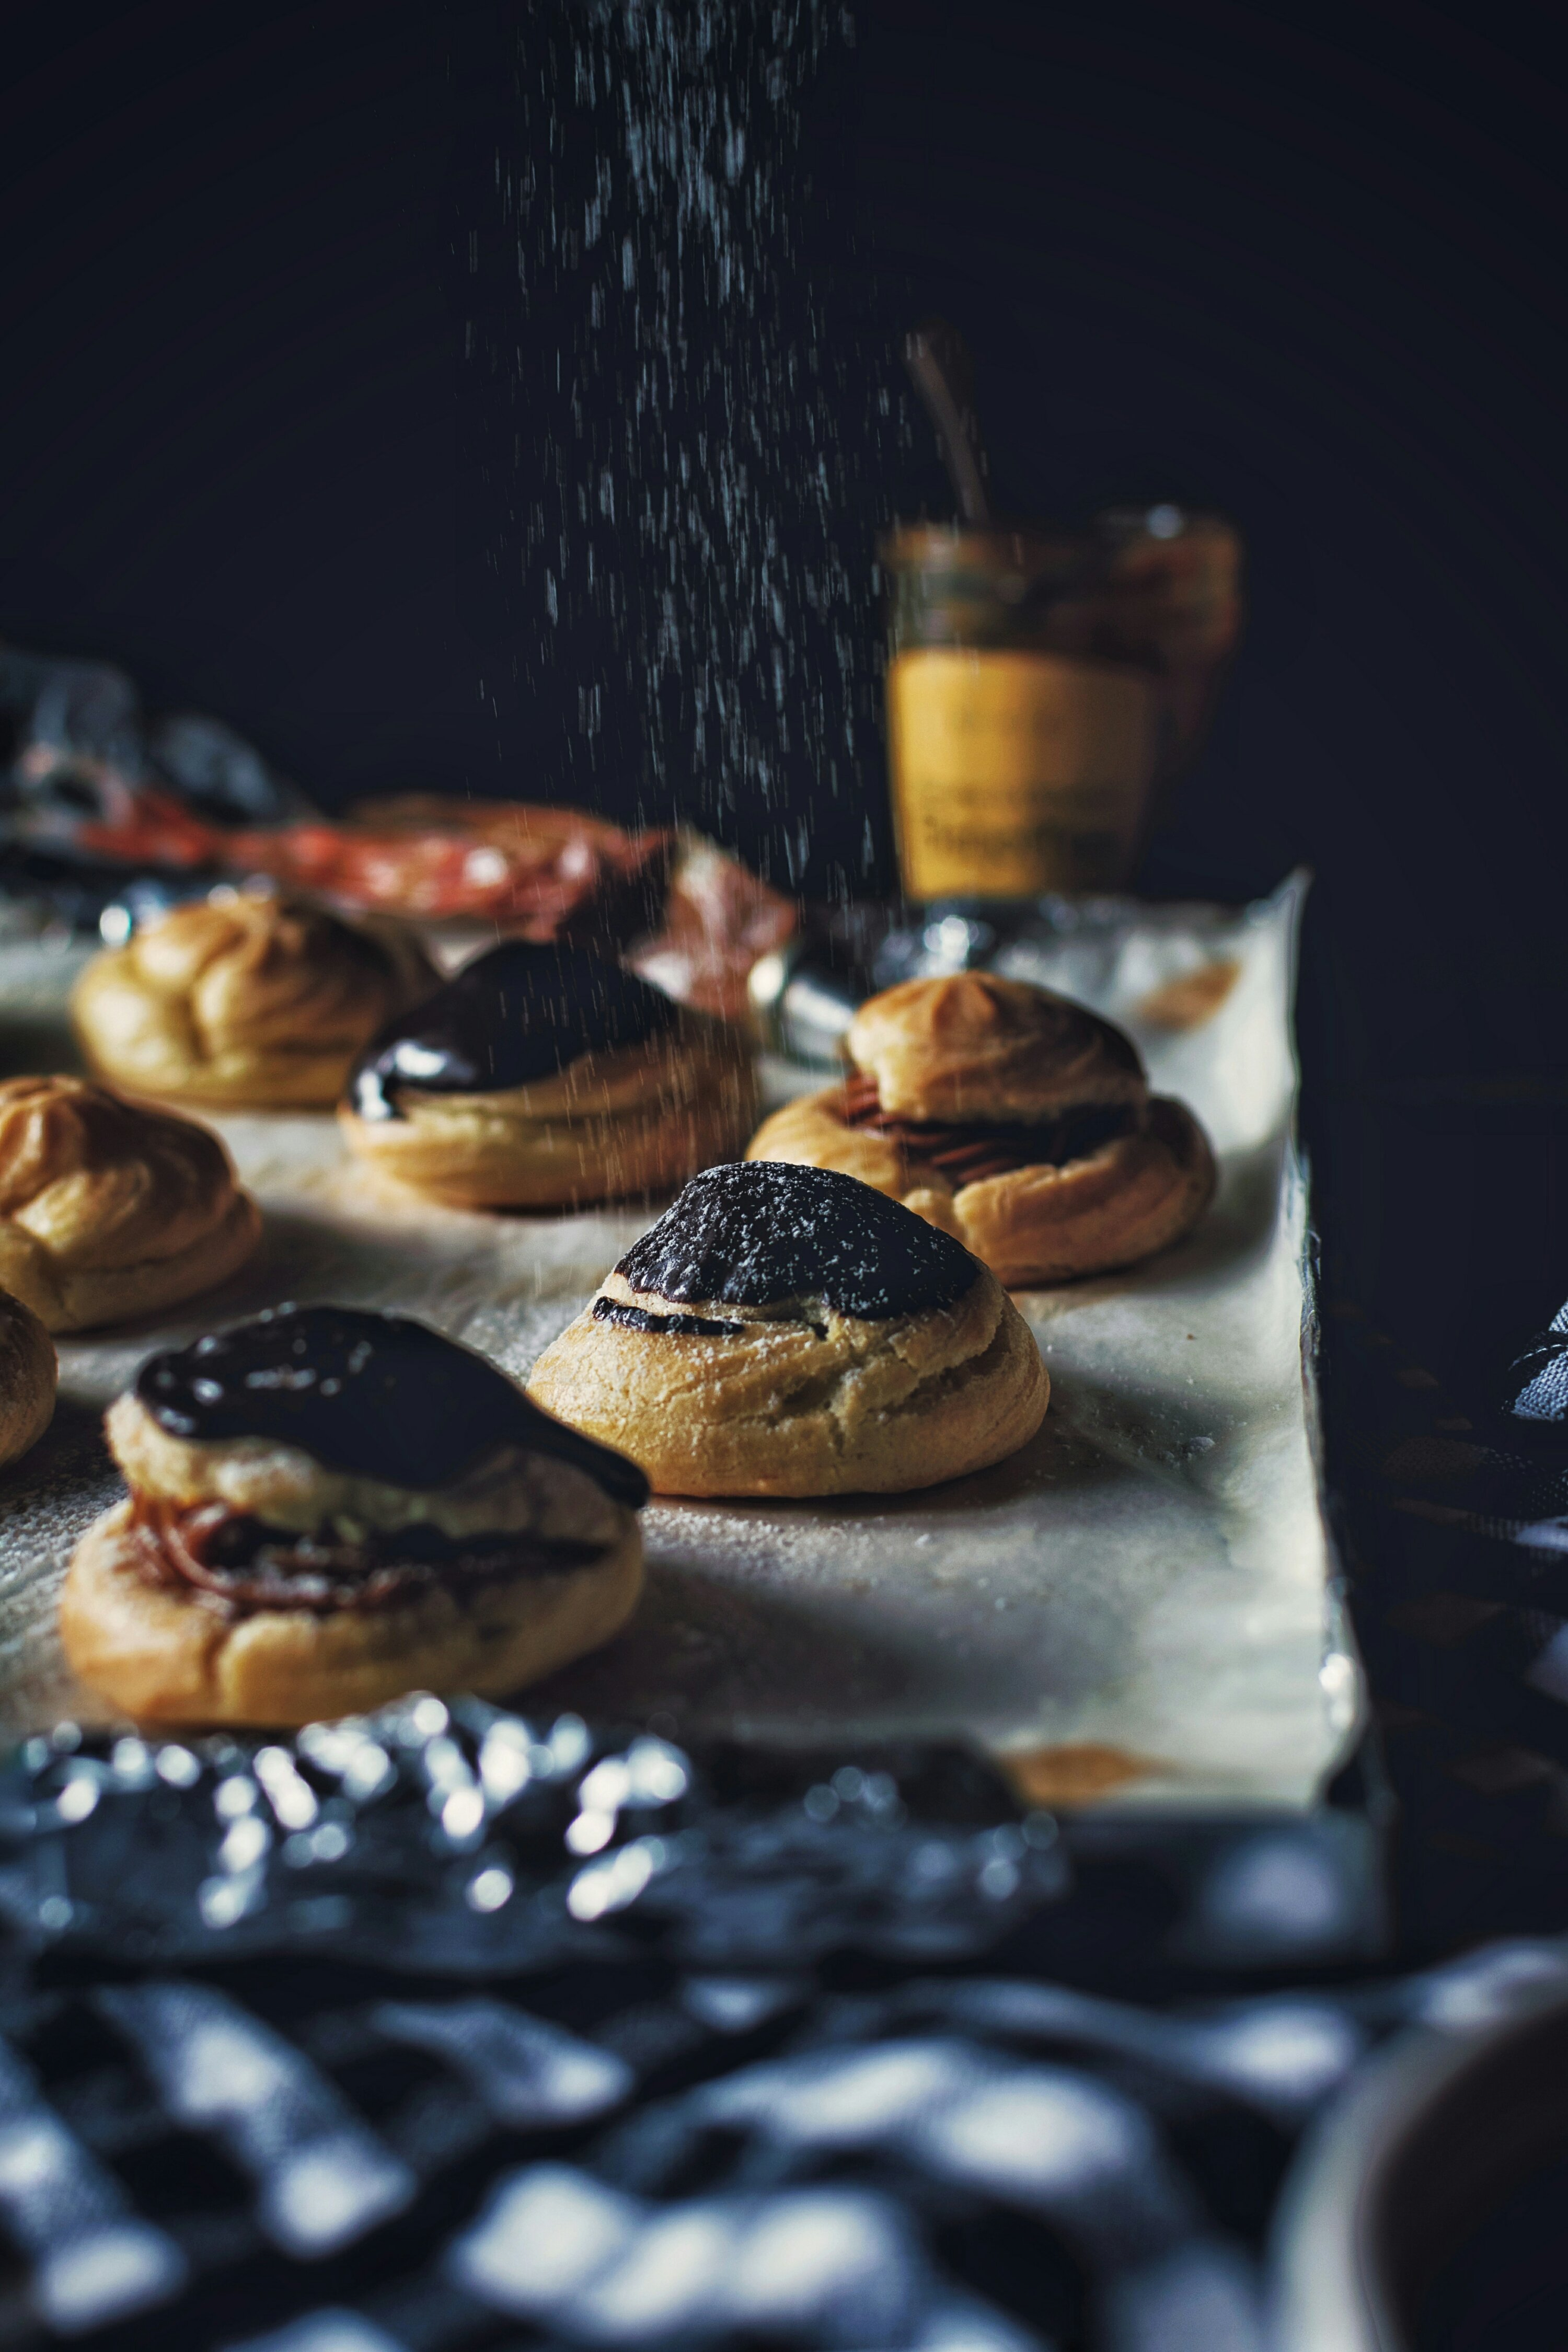 Profiteroles with Banoffee filling